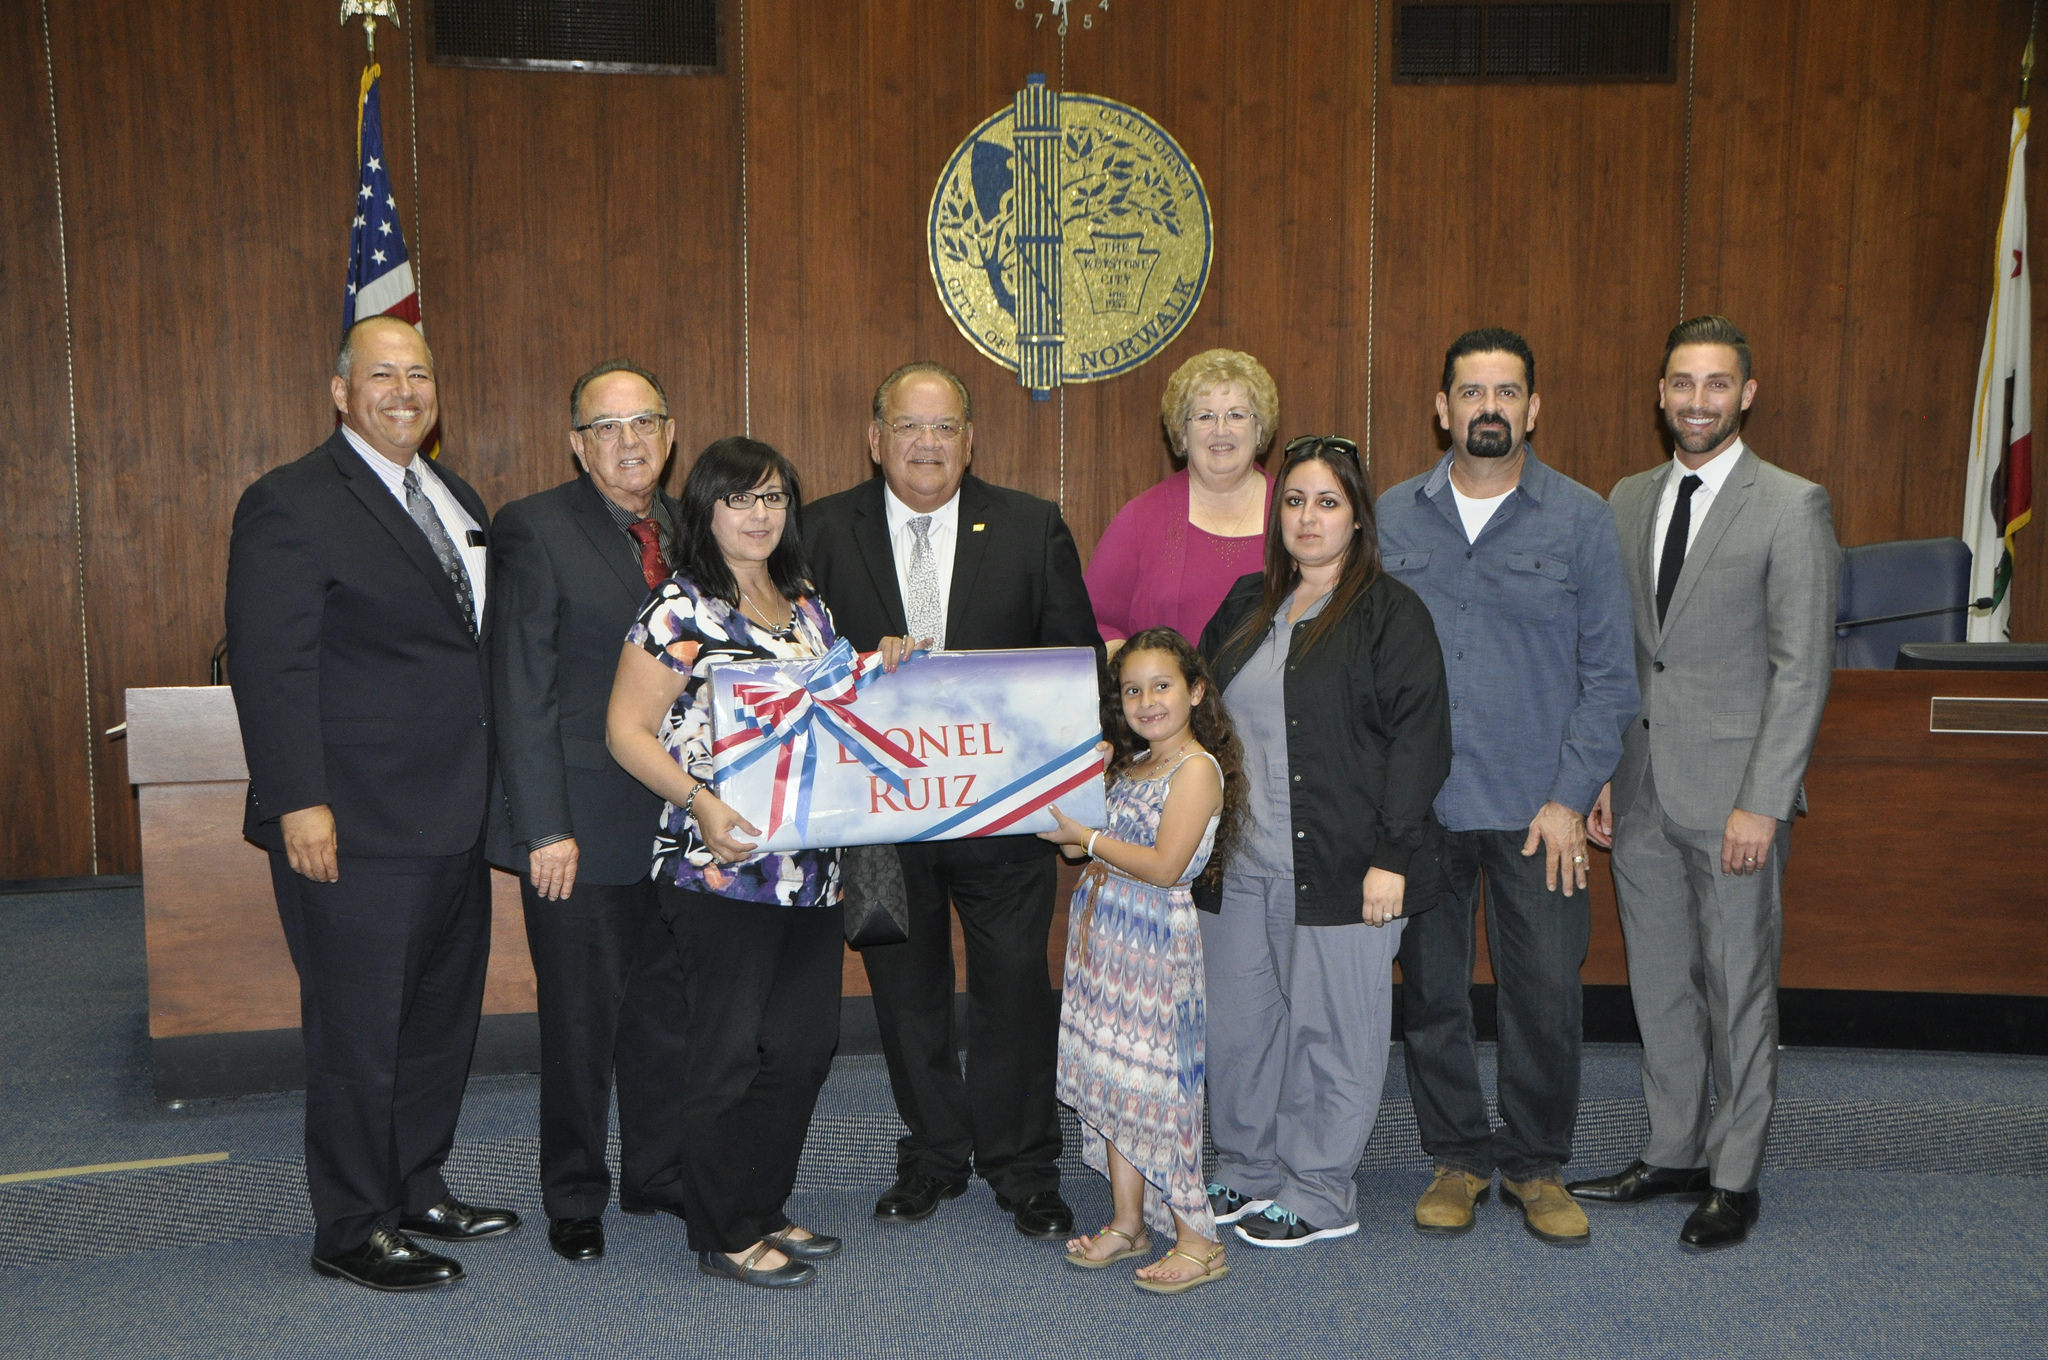 The last military family to receive a banner in Norwalk occurred in October 2016. City of Norwalk photo